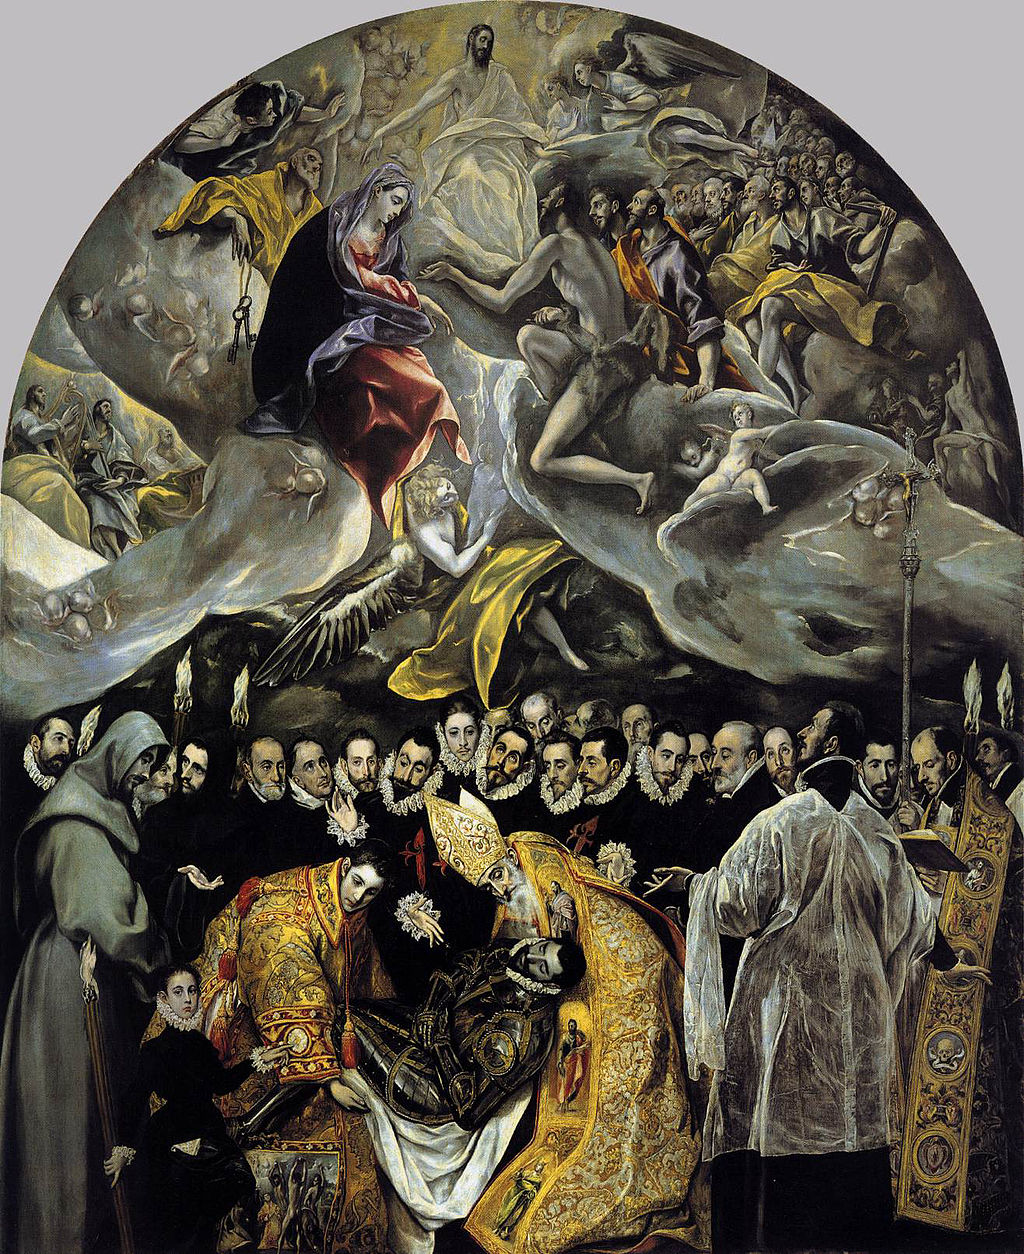 1024px-El_Greco_-_The_Burial_of_the_Count_of_Orgaz.jpg